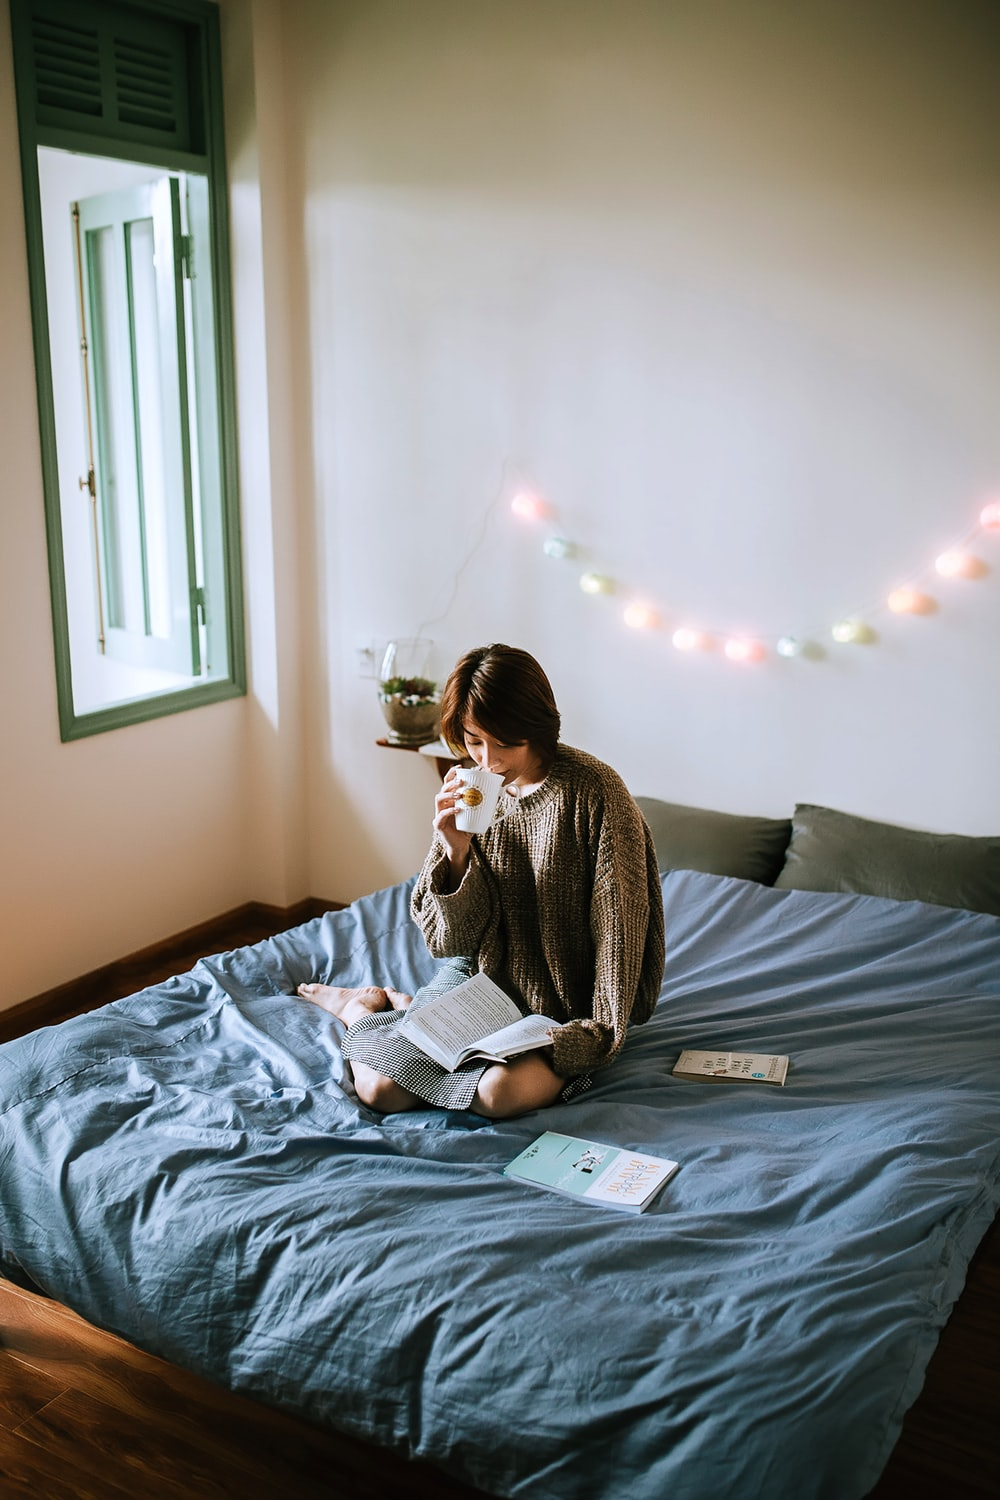 woman in gray sweater sitting on bed